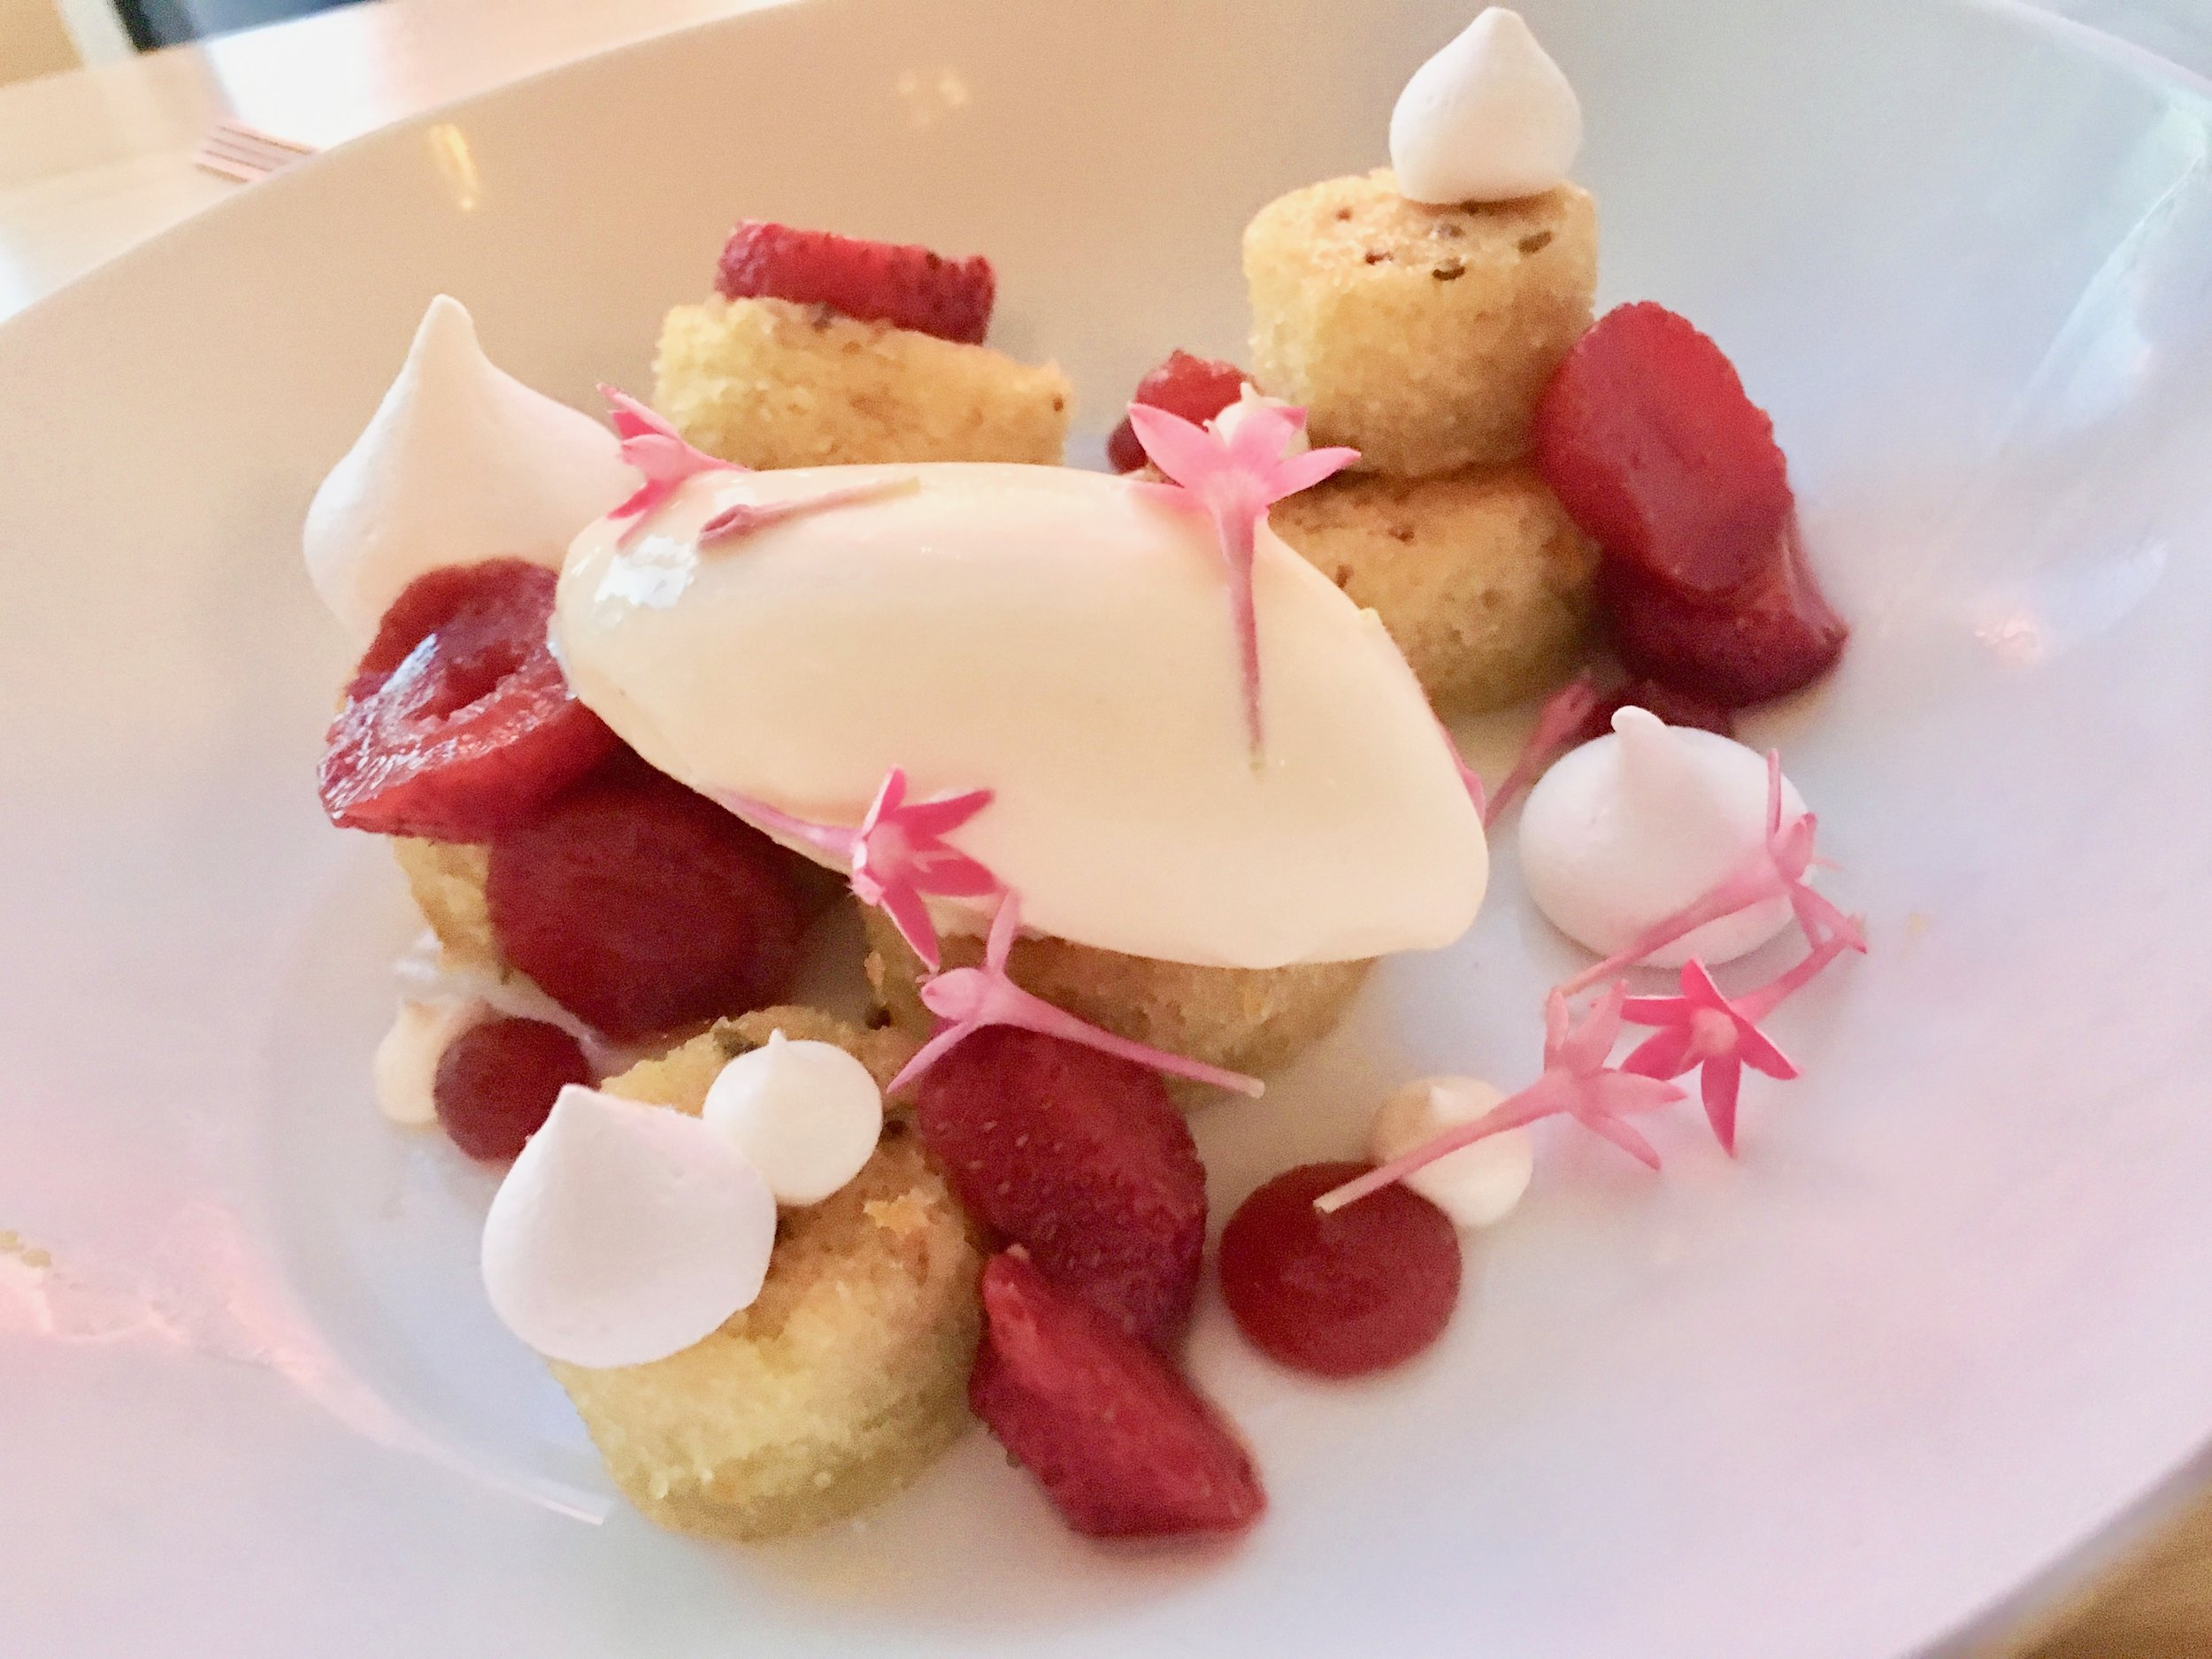 Olive oil cake with strawberry